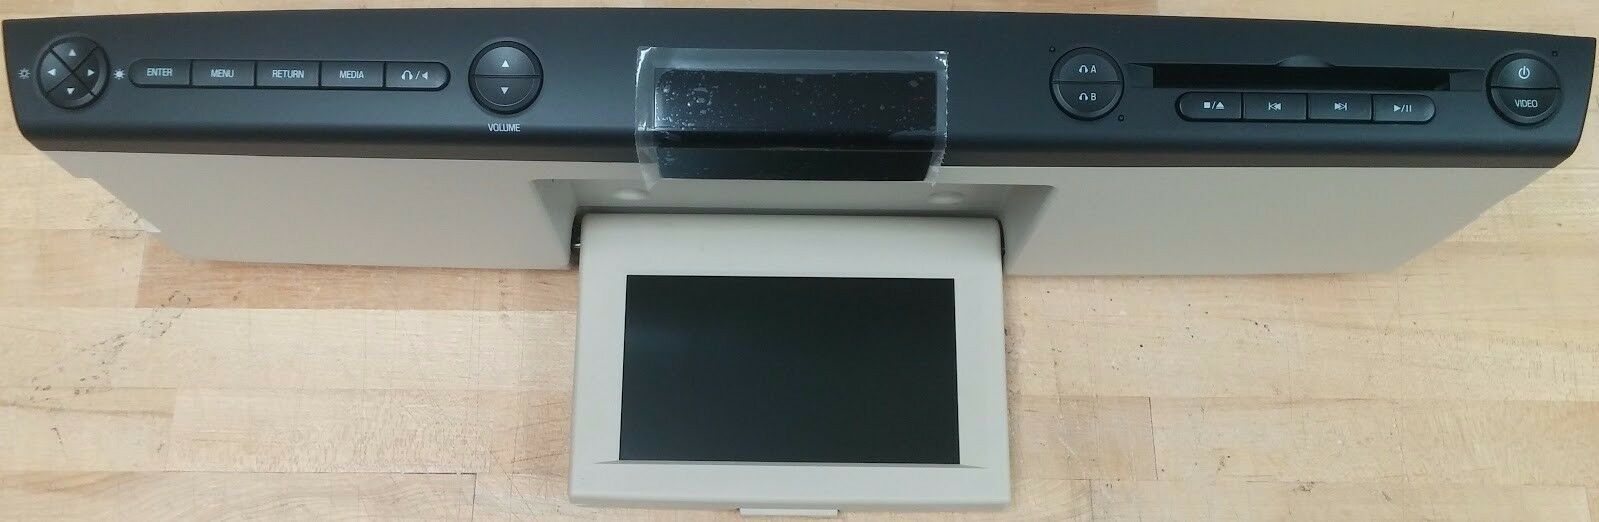 Ford overhead video rear entertainment system. DVD & LCD display screen. Med Tan - $153.09